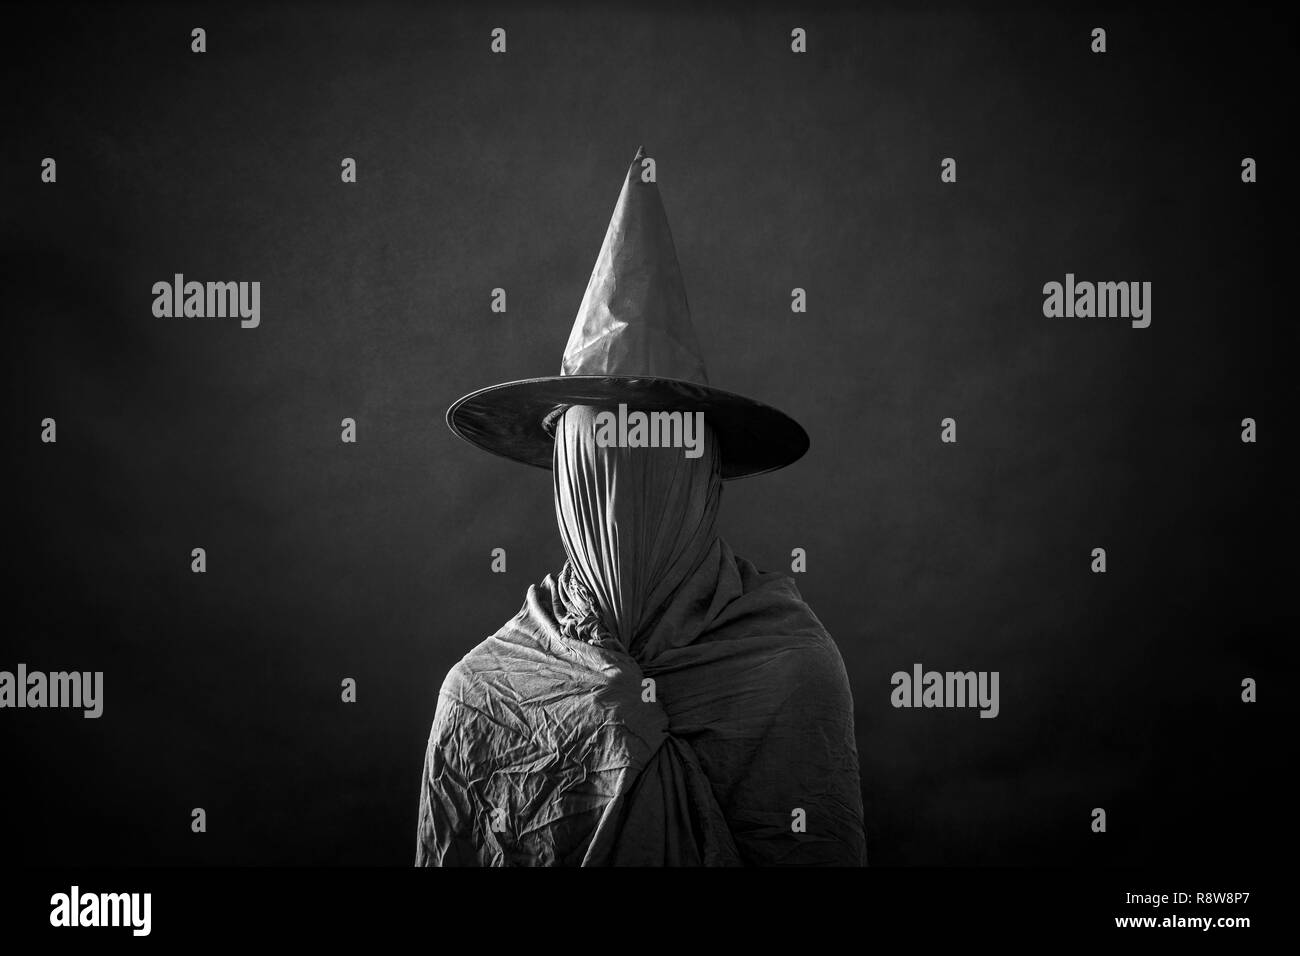 Ghostly figure with long hat in the dark - Stock Image